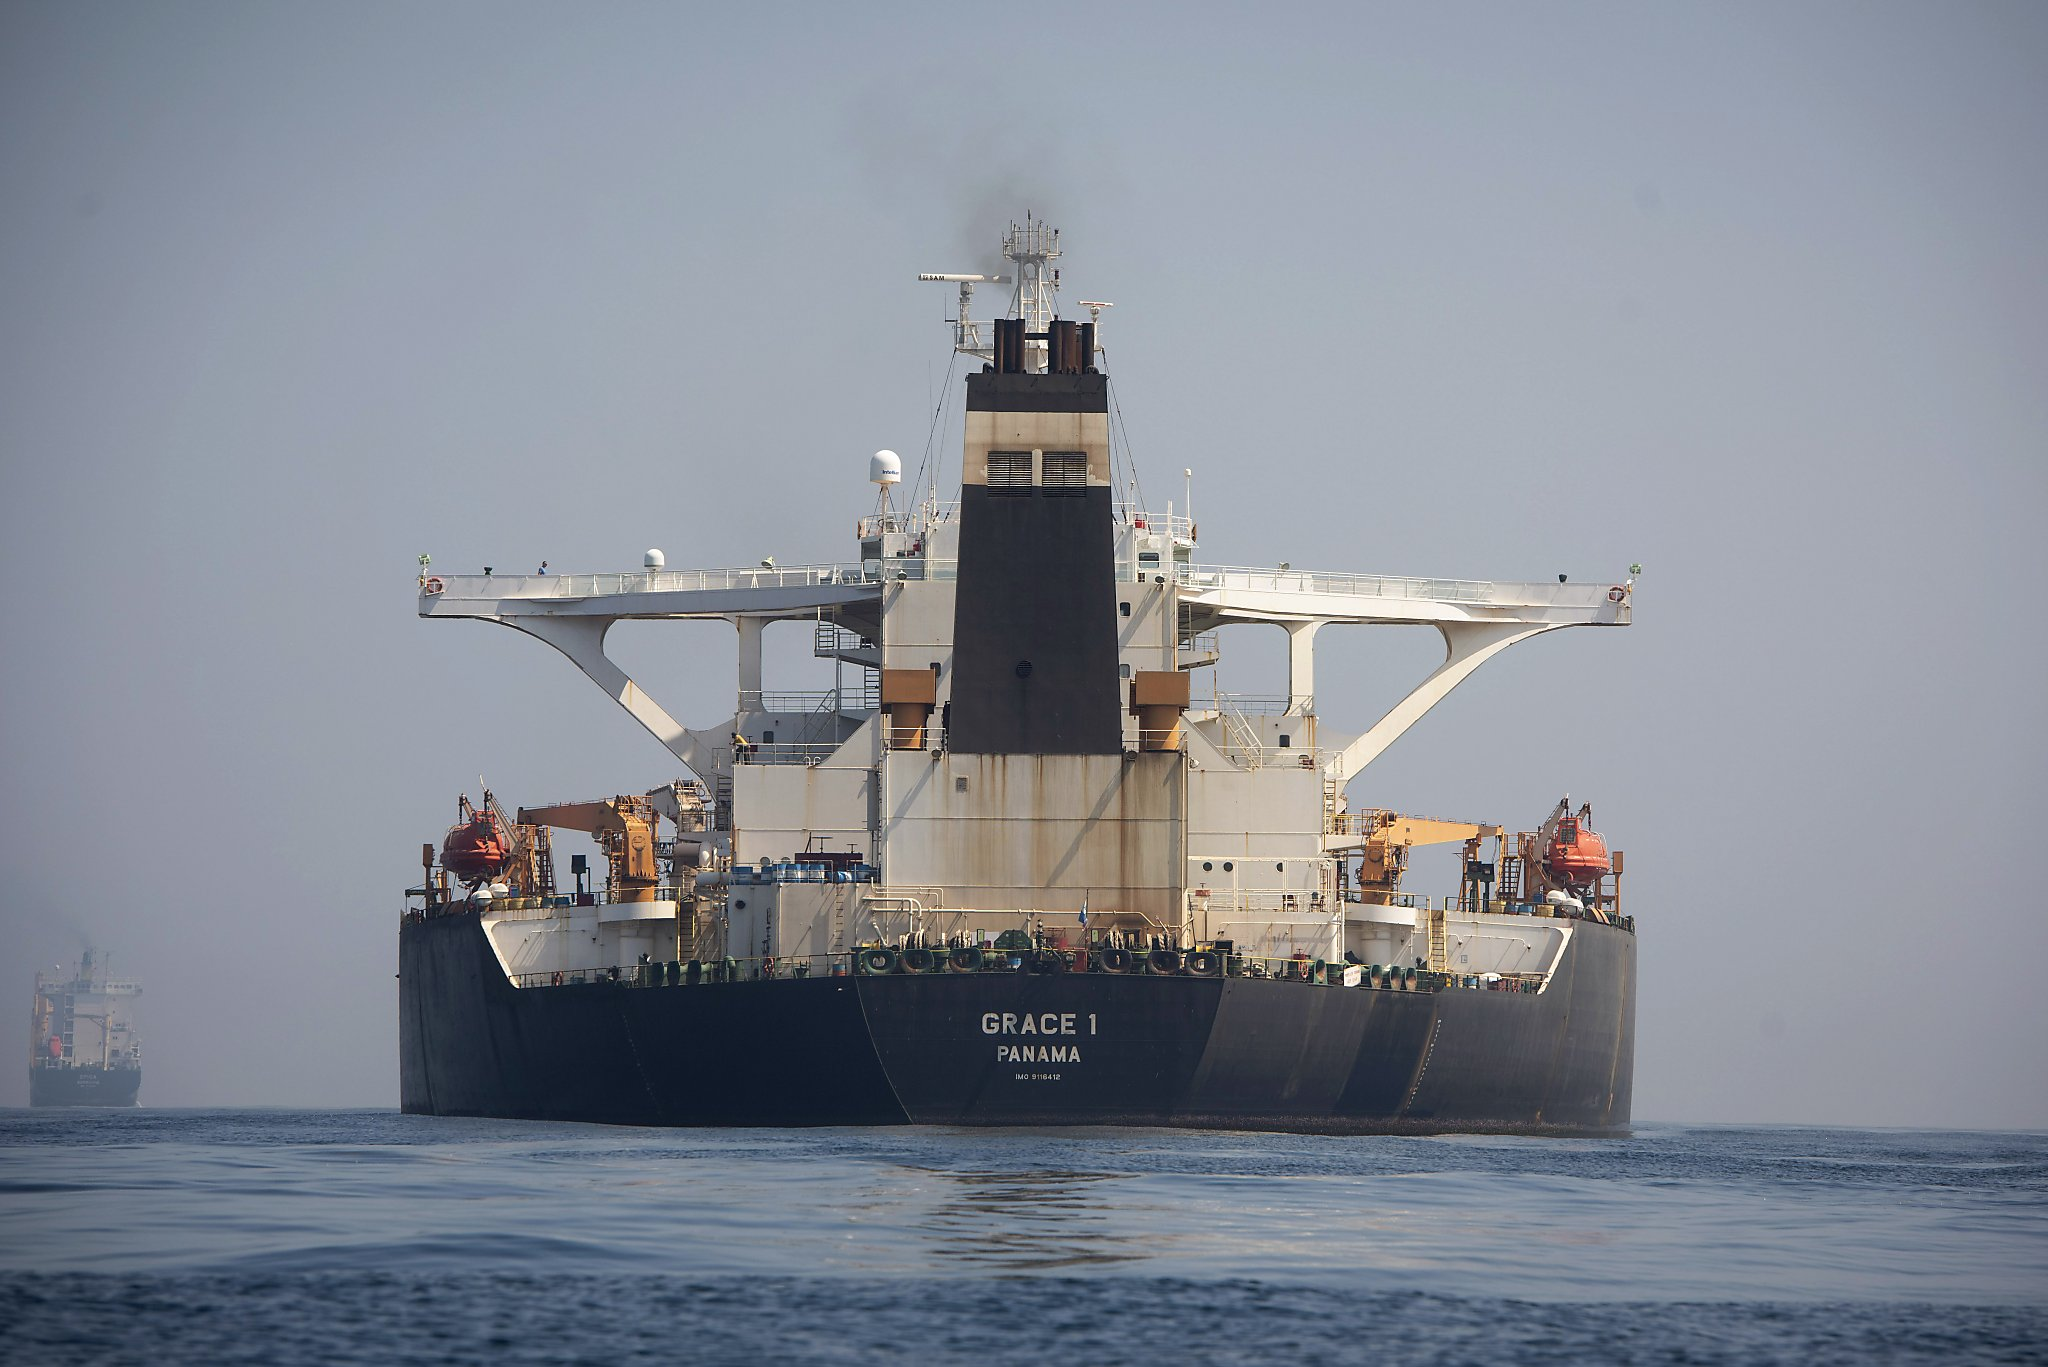 U.S. threatens sanctions over Iran tanker after court ruling